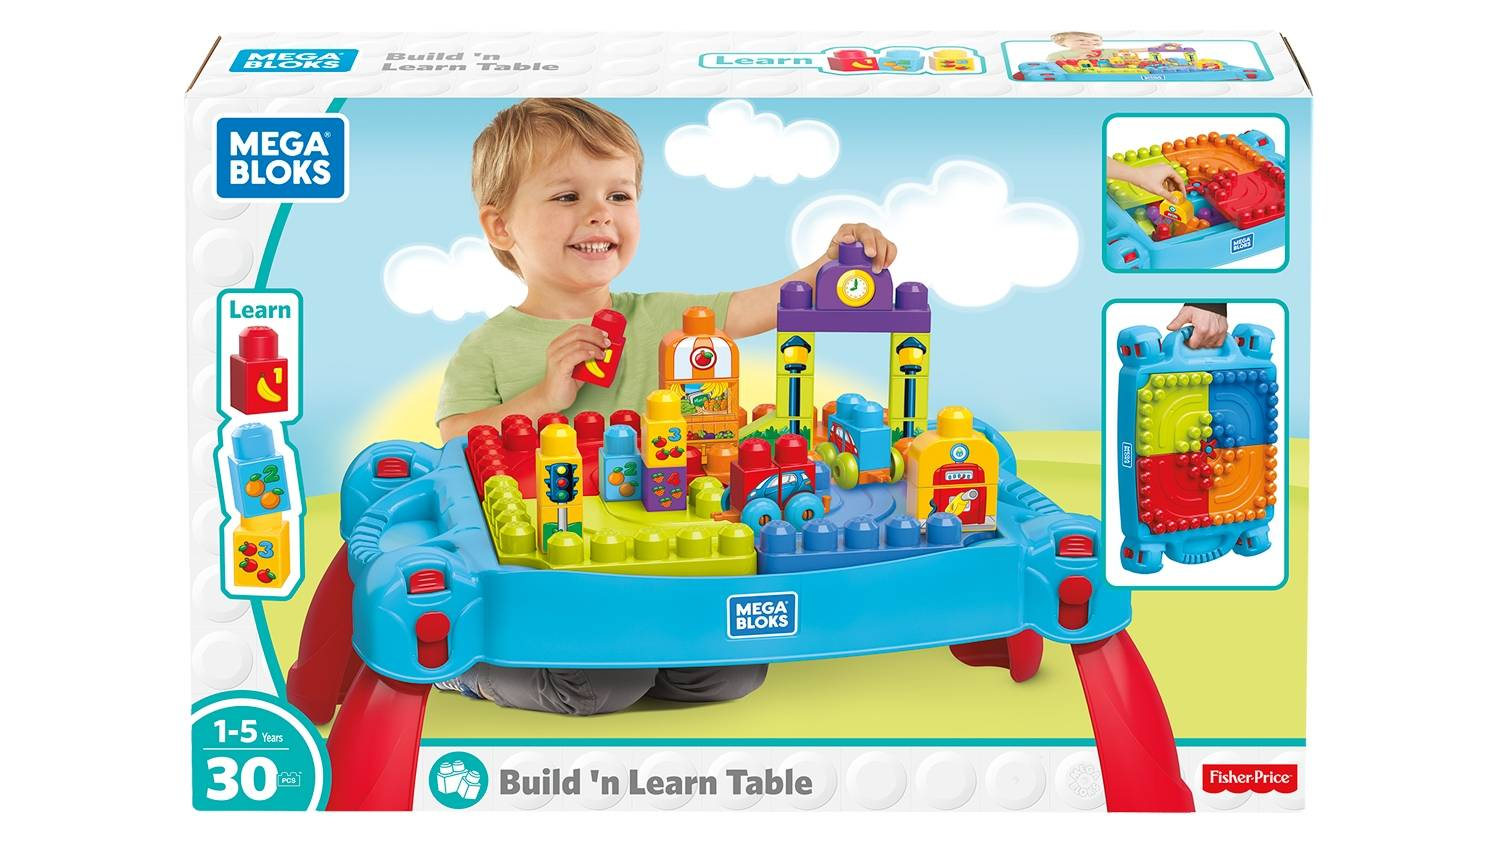 Build 'n Learn Table (Classic)